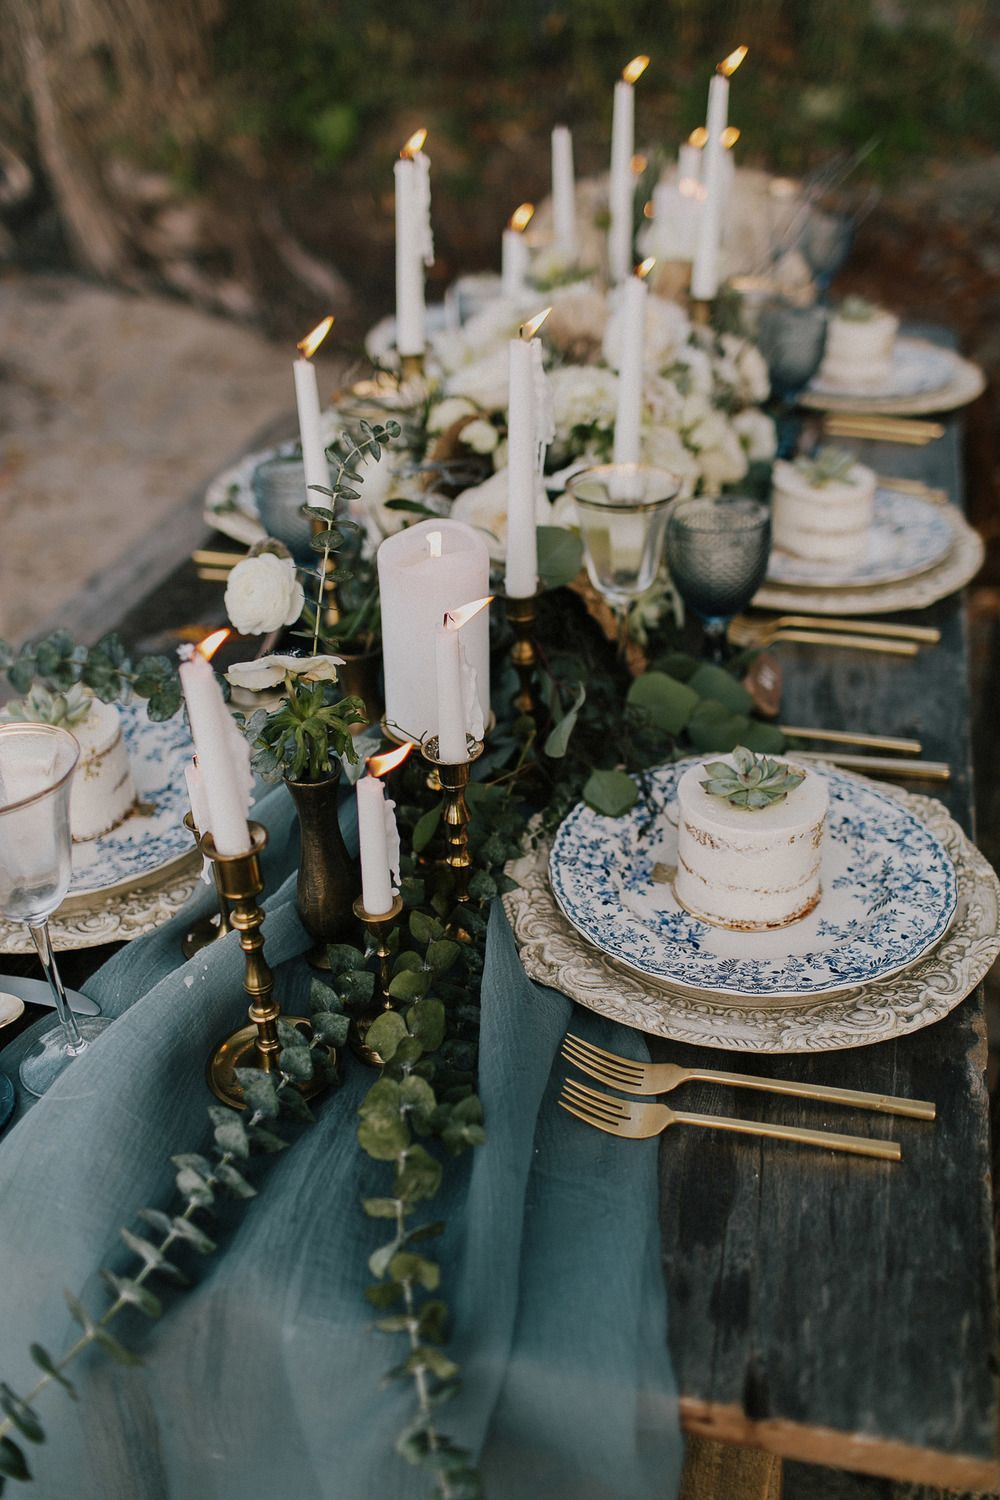 Beach wedding decorations elegant  Wedding table setting  uc  Pinterest  Wedding Wedding table and